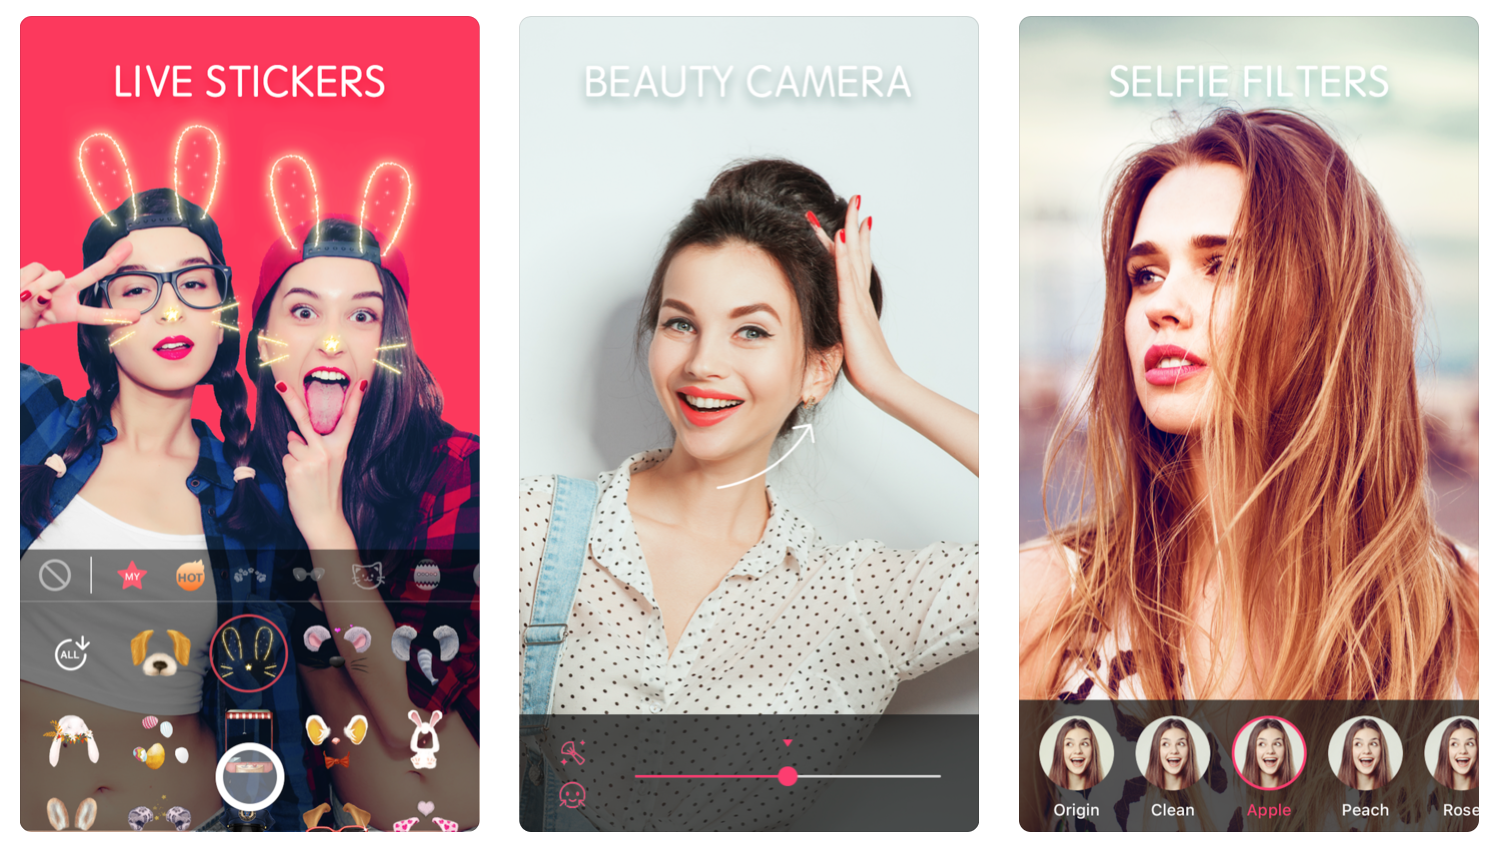 Sweet face camera face filters